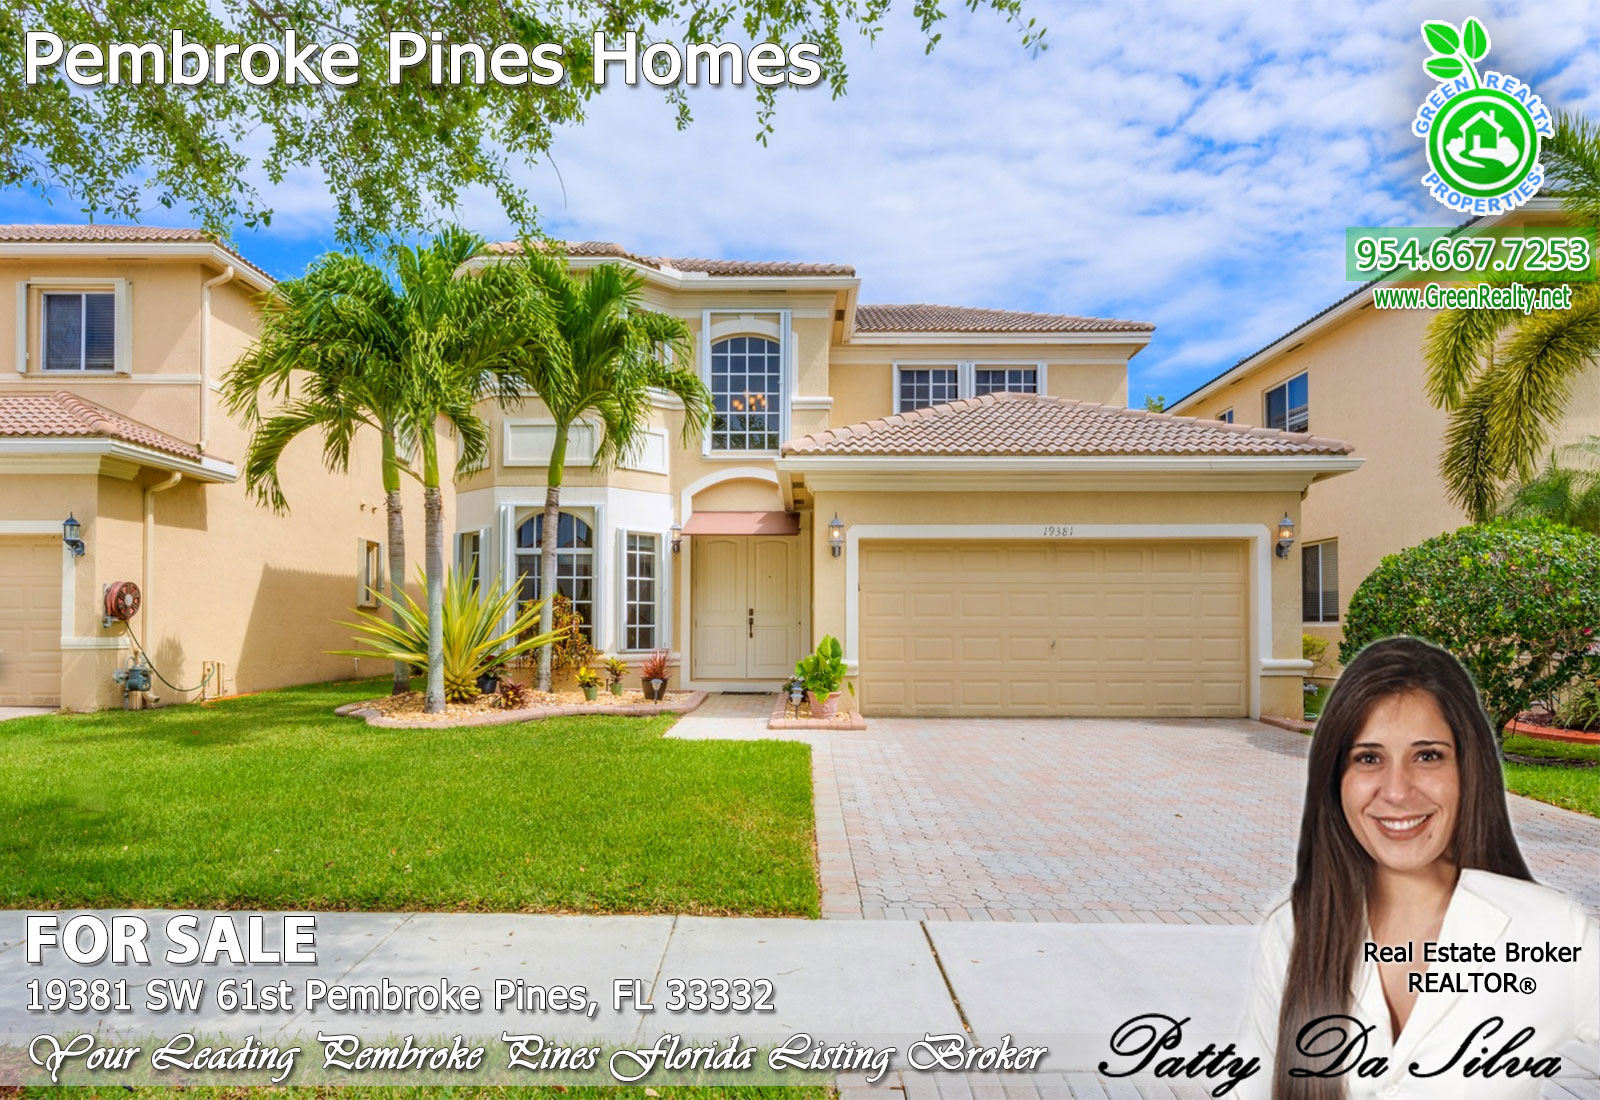 pembroke-pines-homes-for-sale-by-broker-patty-da-silva